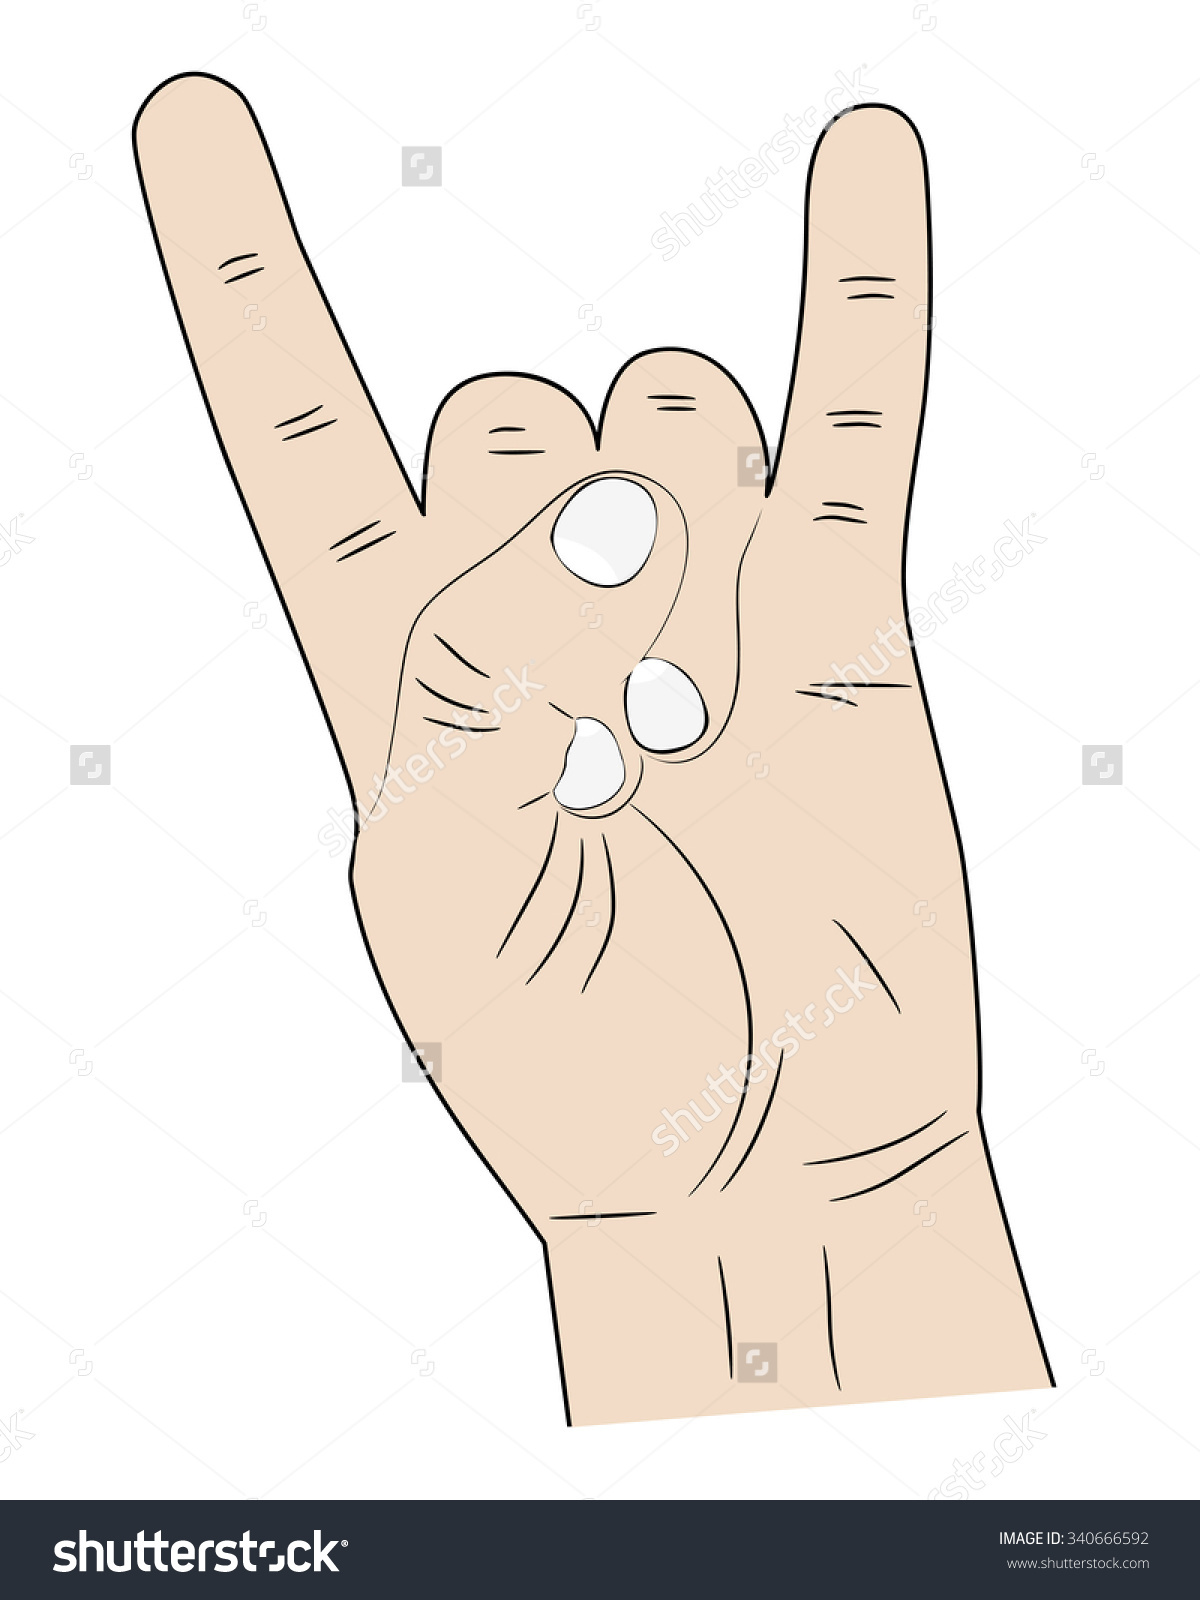 Pointer finger and pinky finger clipart images image freeuse library Sign Hands Index Finger Pinky Fingers Stock Vector 340666592 ... image freeuse library